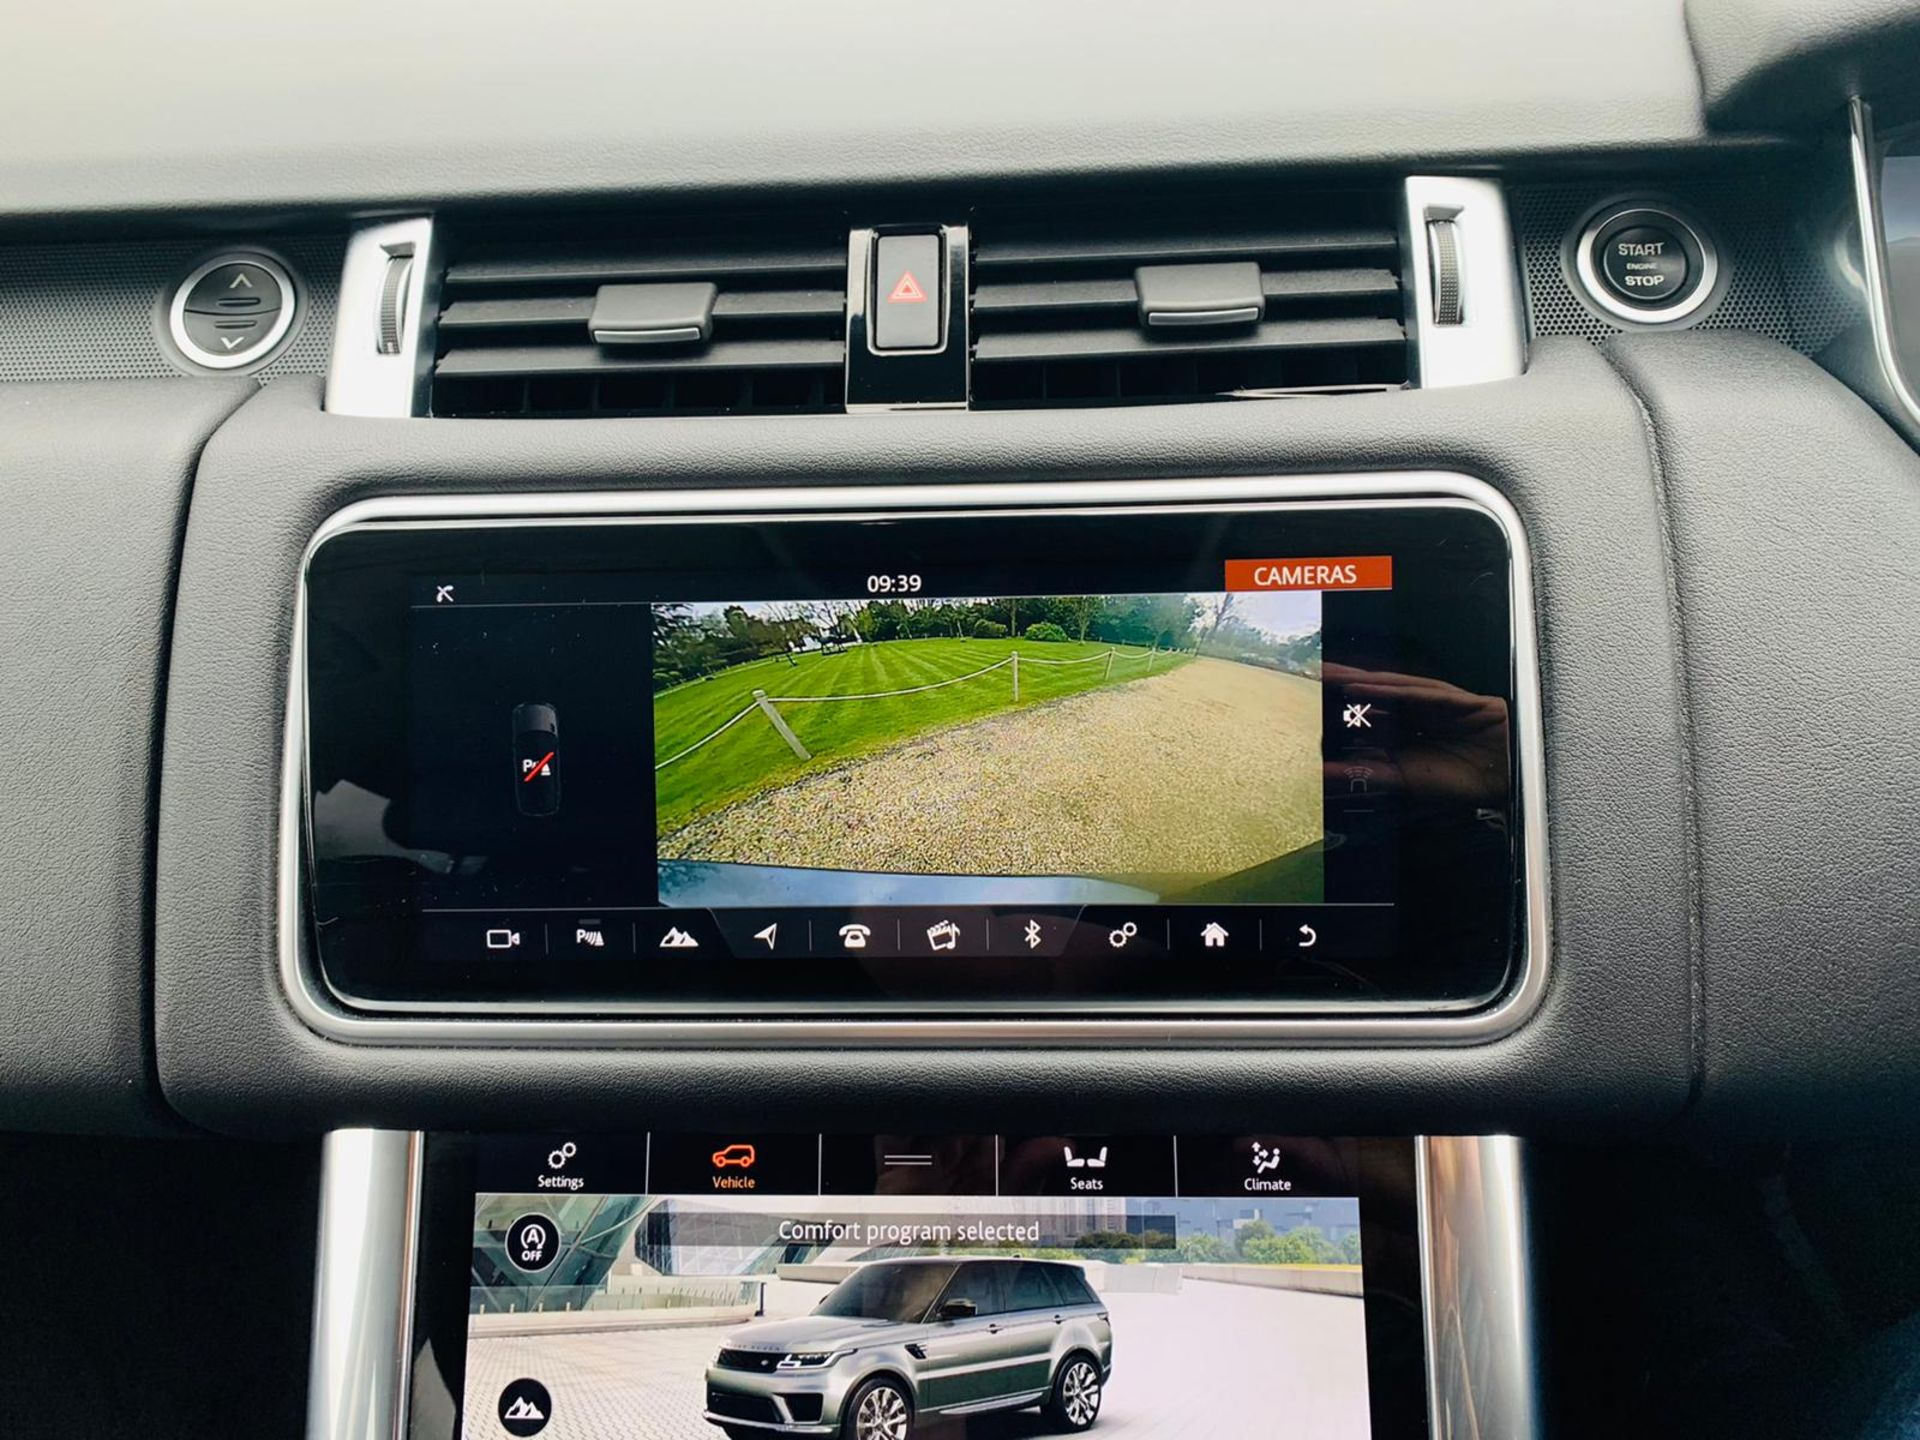 (RESERVE MET) Range Rover Sport 3.0 SDV6 HSE Auto - 2019 - 1 Keeper From New - Virtual Cockpit - - Image 21 of 42